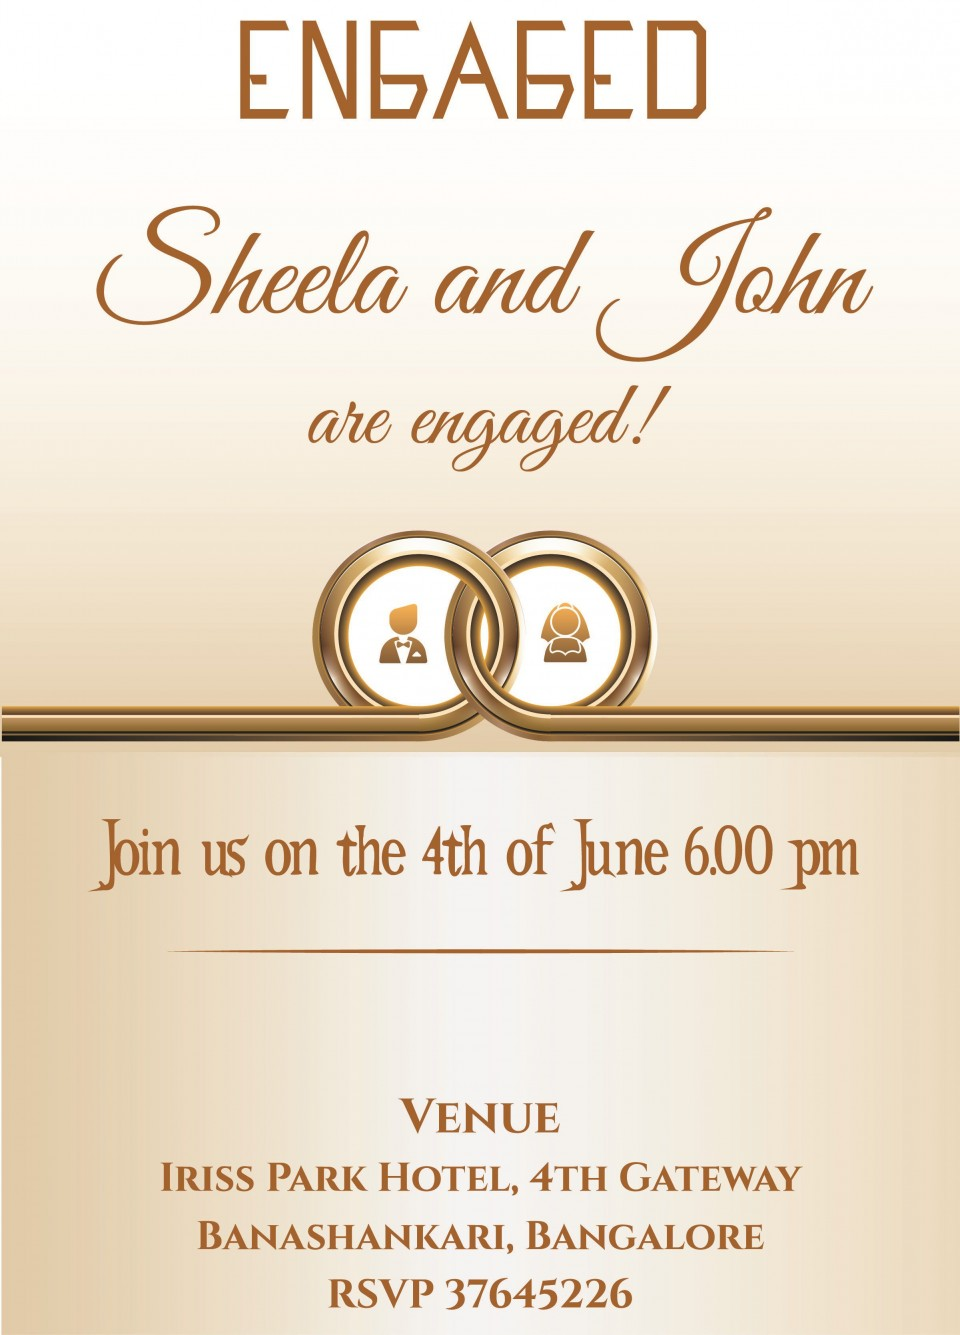 002 Breathtaking Free Engagement Invitation Template Online With Photo Highest Clarity 960